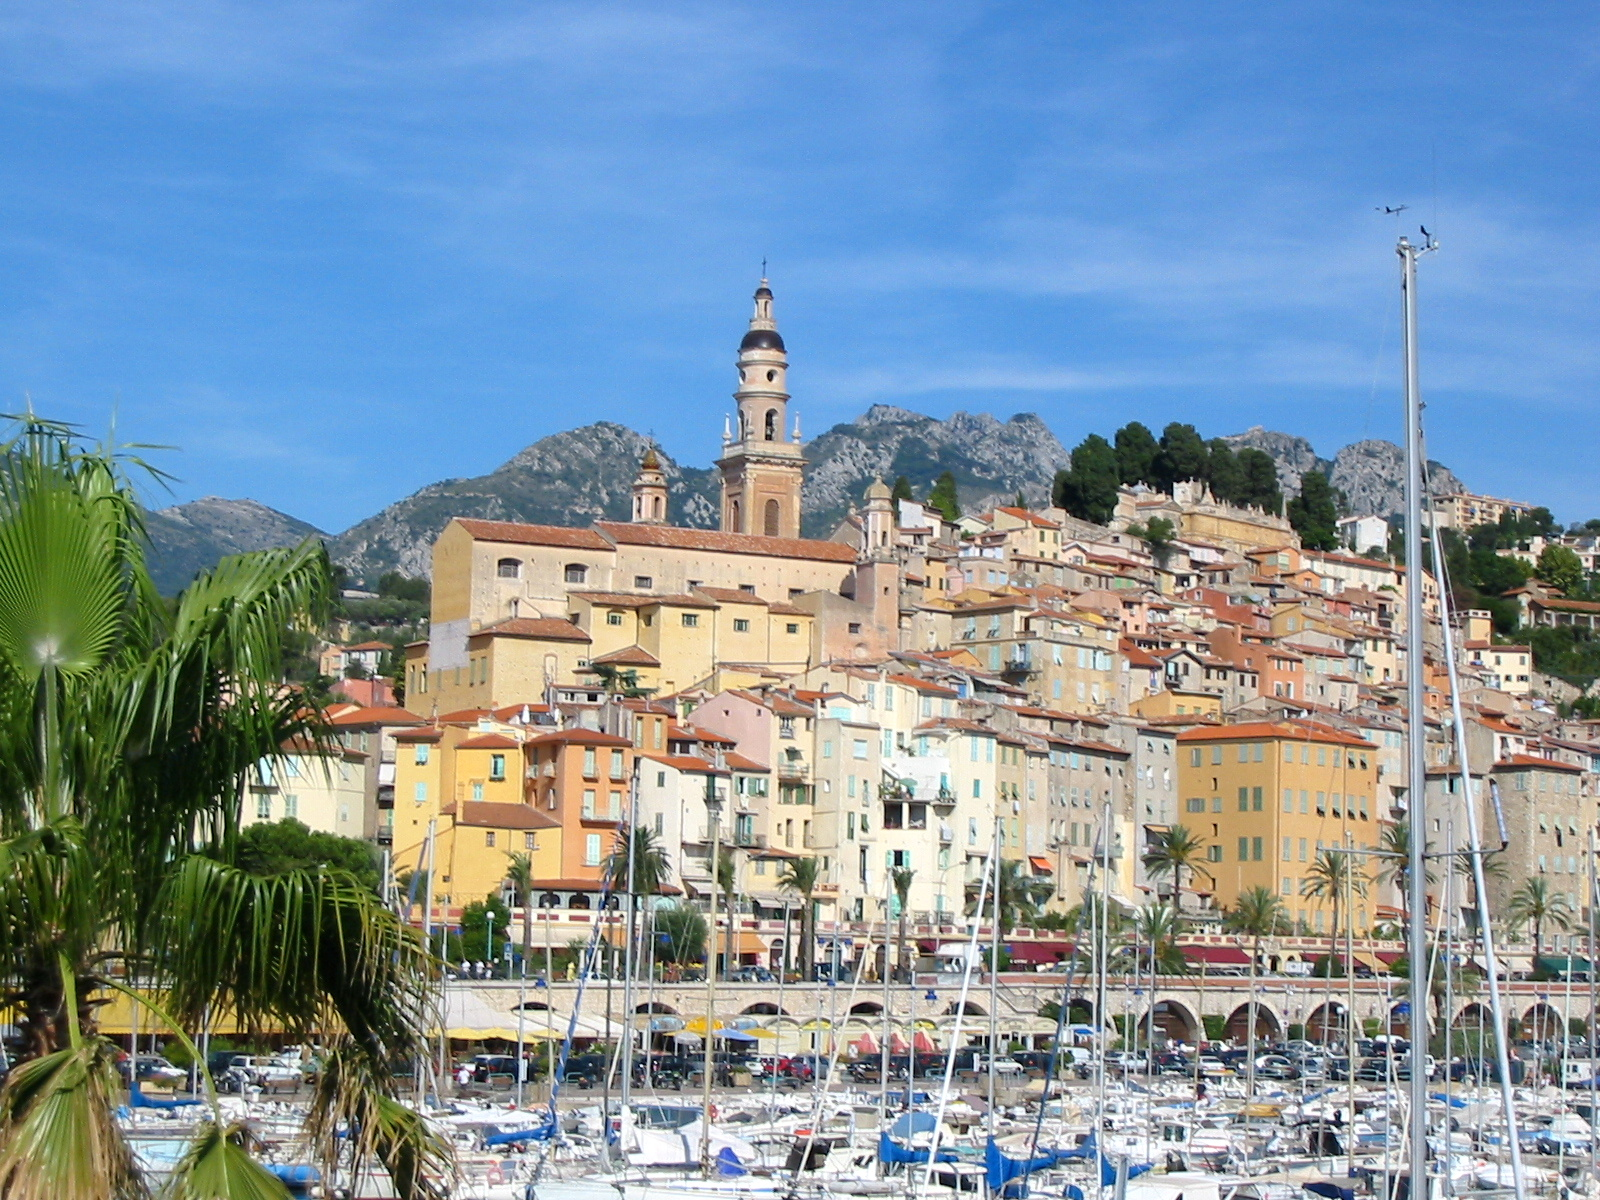 Menton © Vinbaron - licence [CC BY-SA 3.0] from Wikimedia Commons